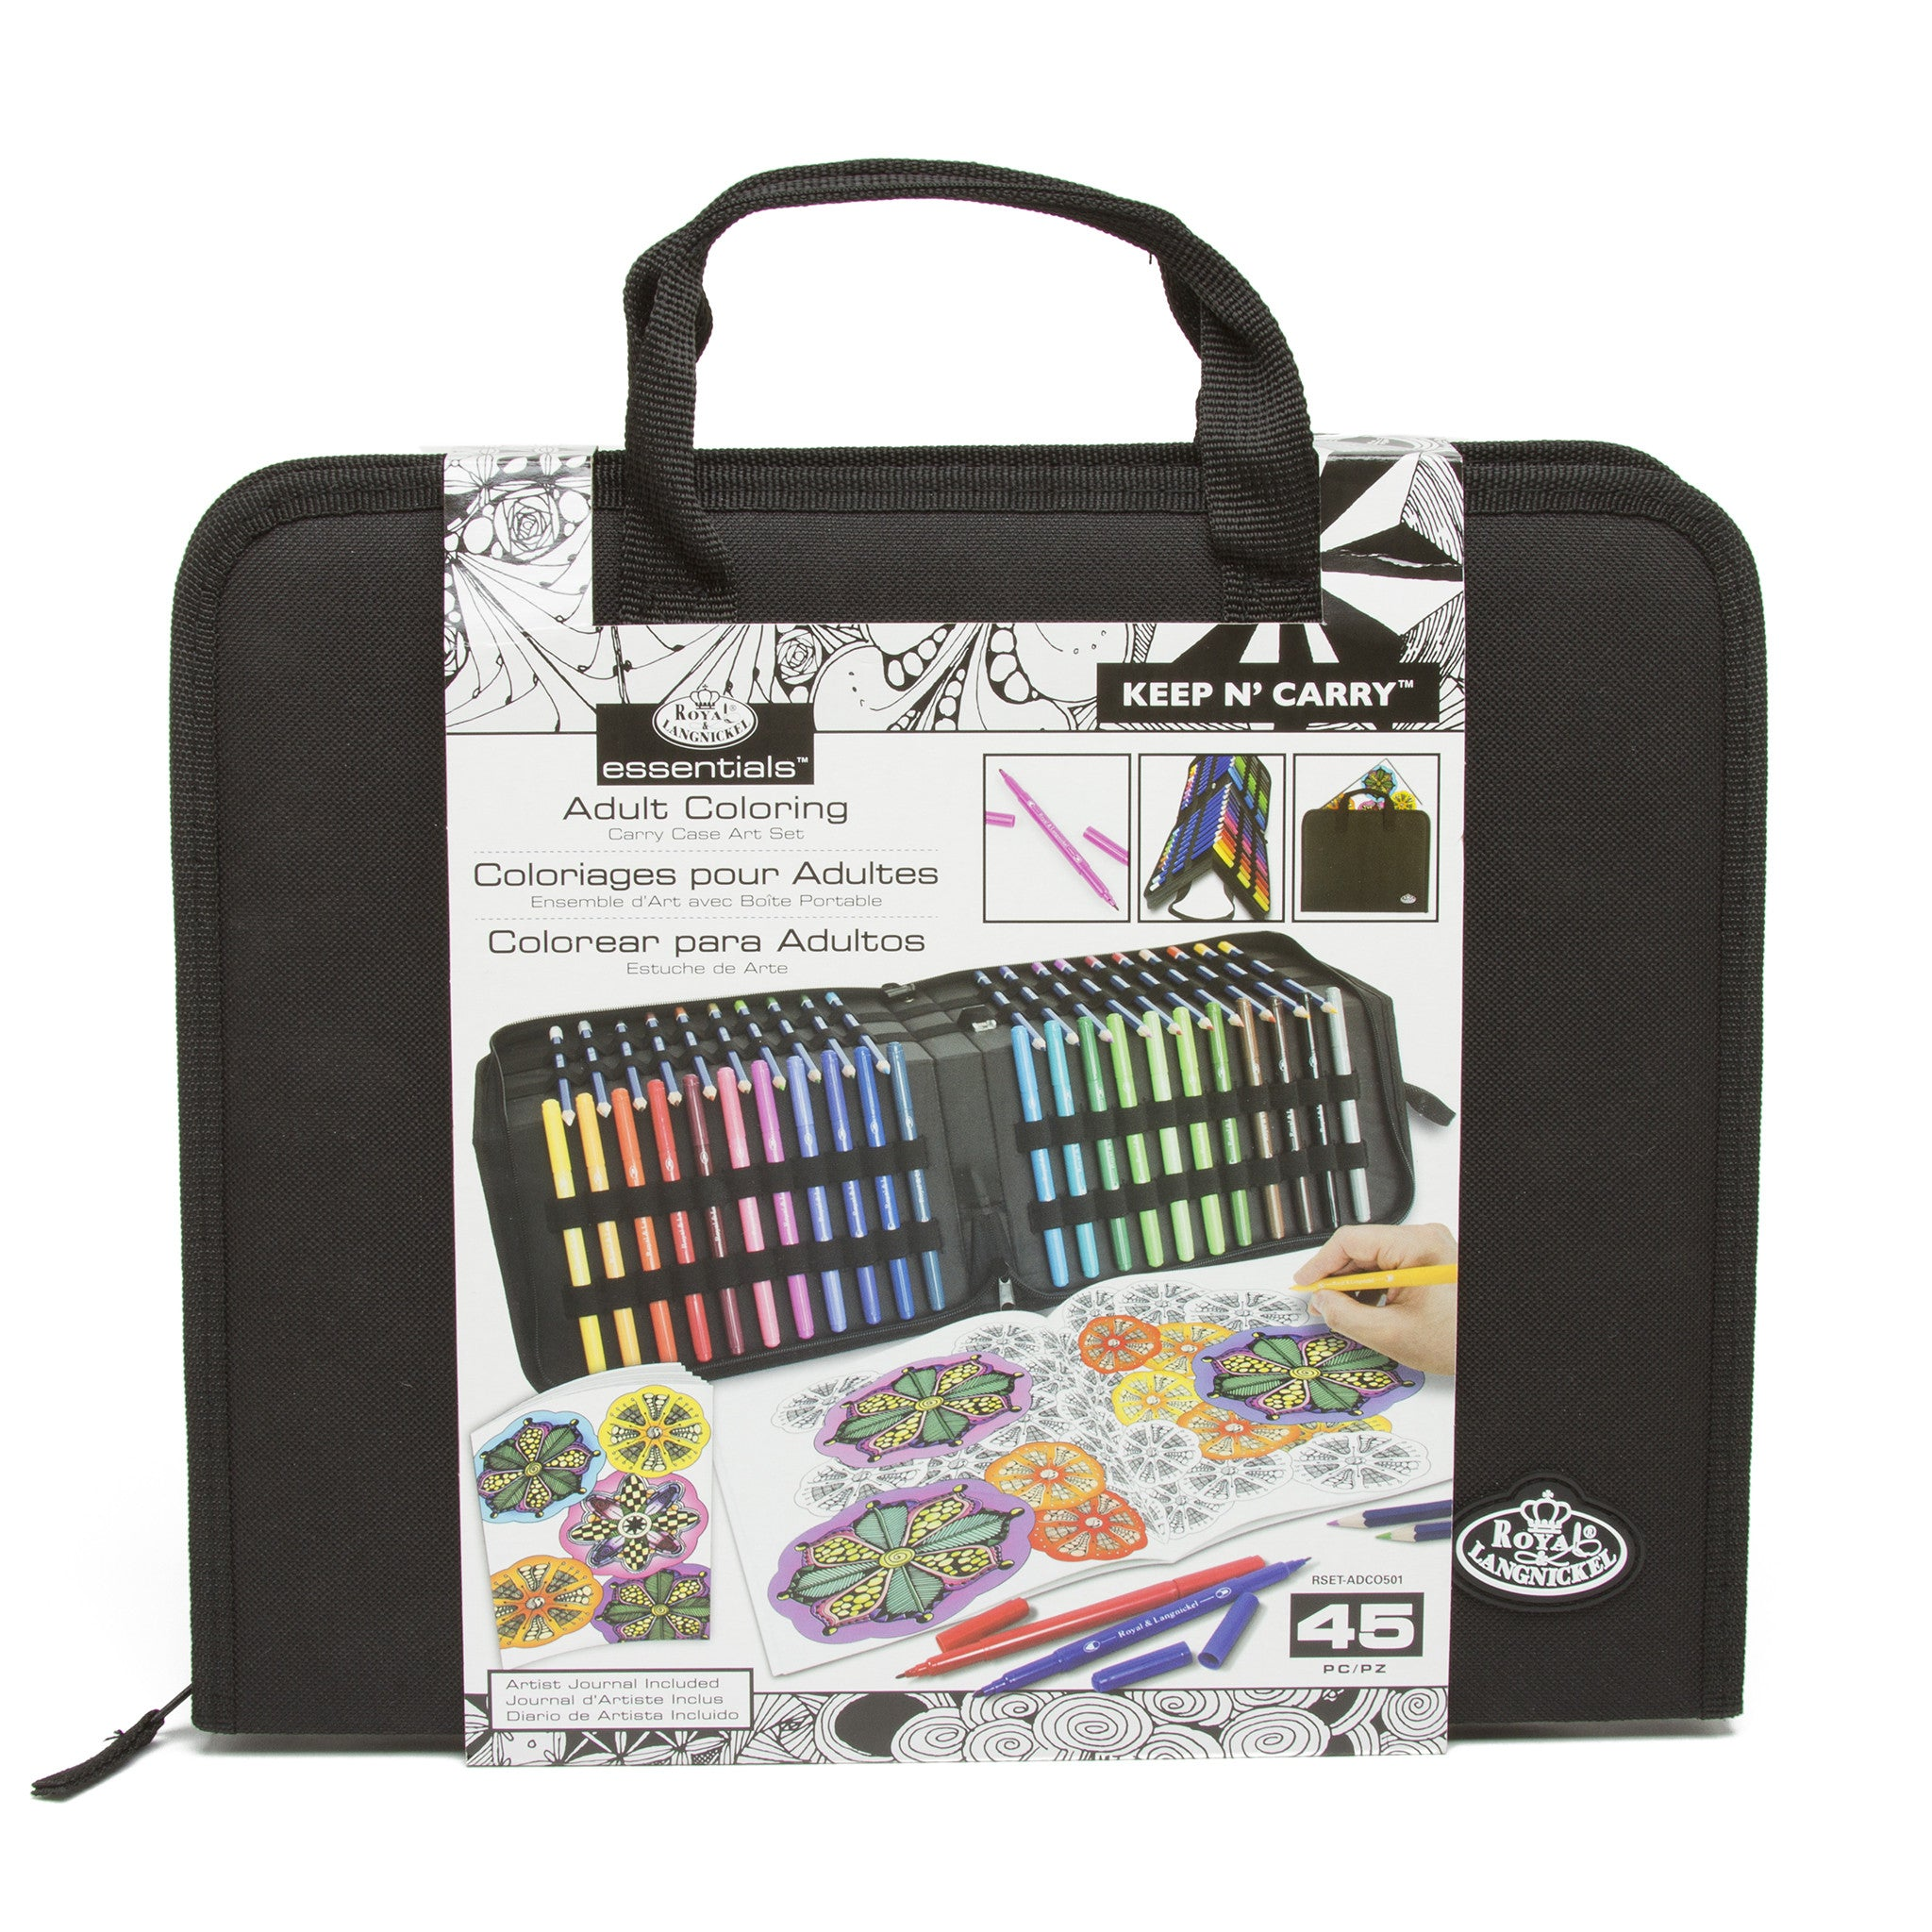 Art Set for Coloring in Carry Case – The Getty Store